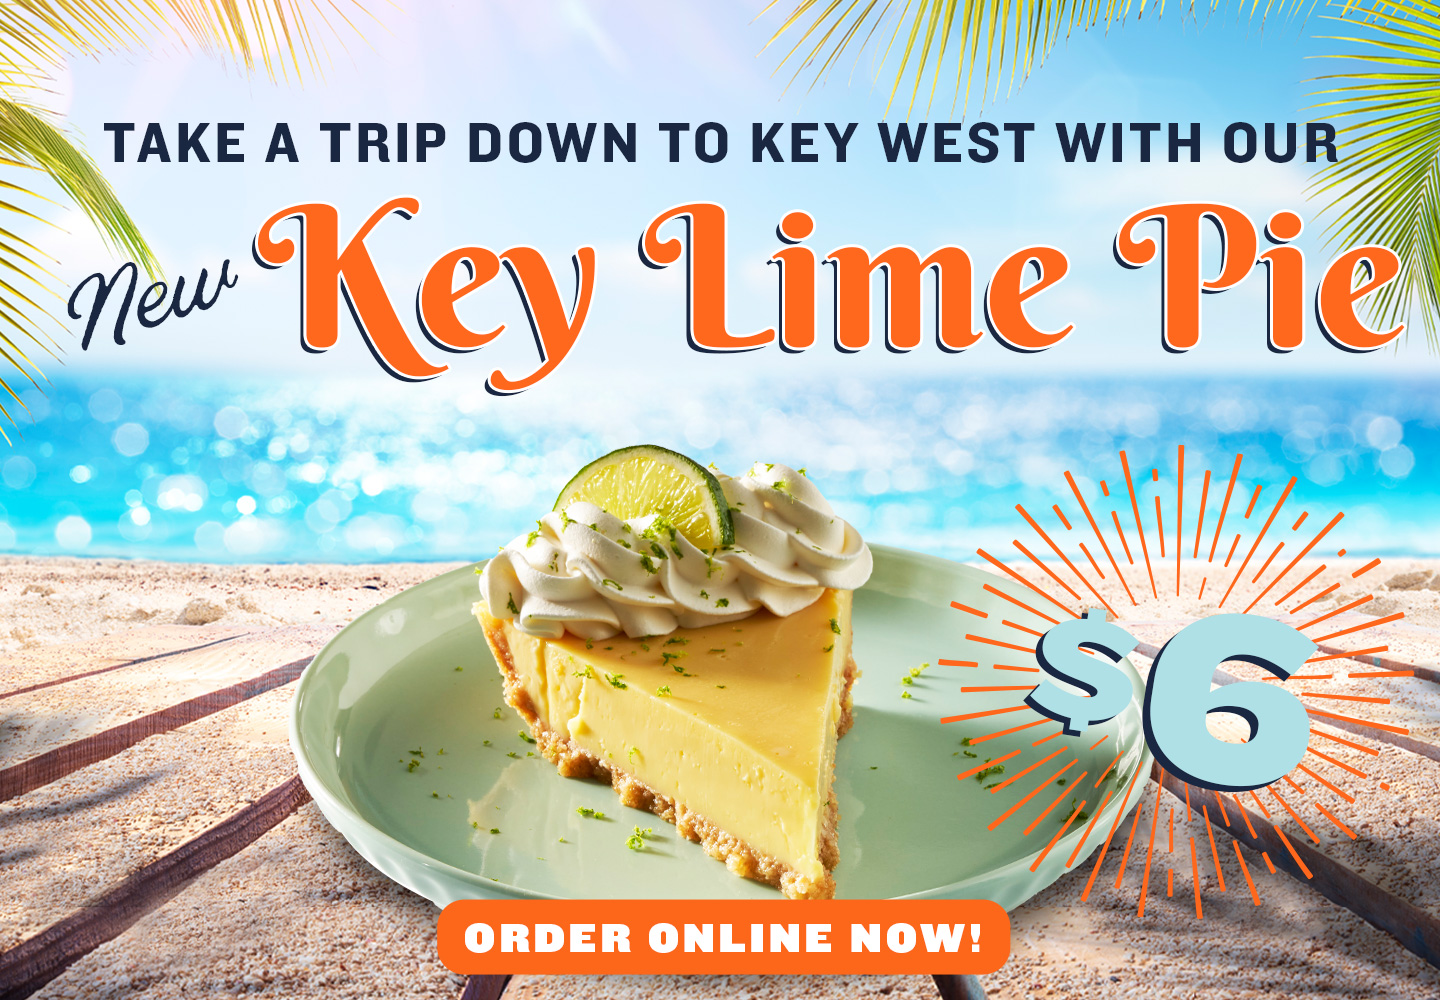 Take a trip down to Key West with our New Key Lime Pie